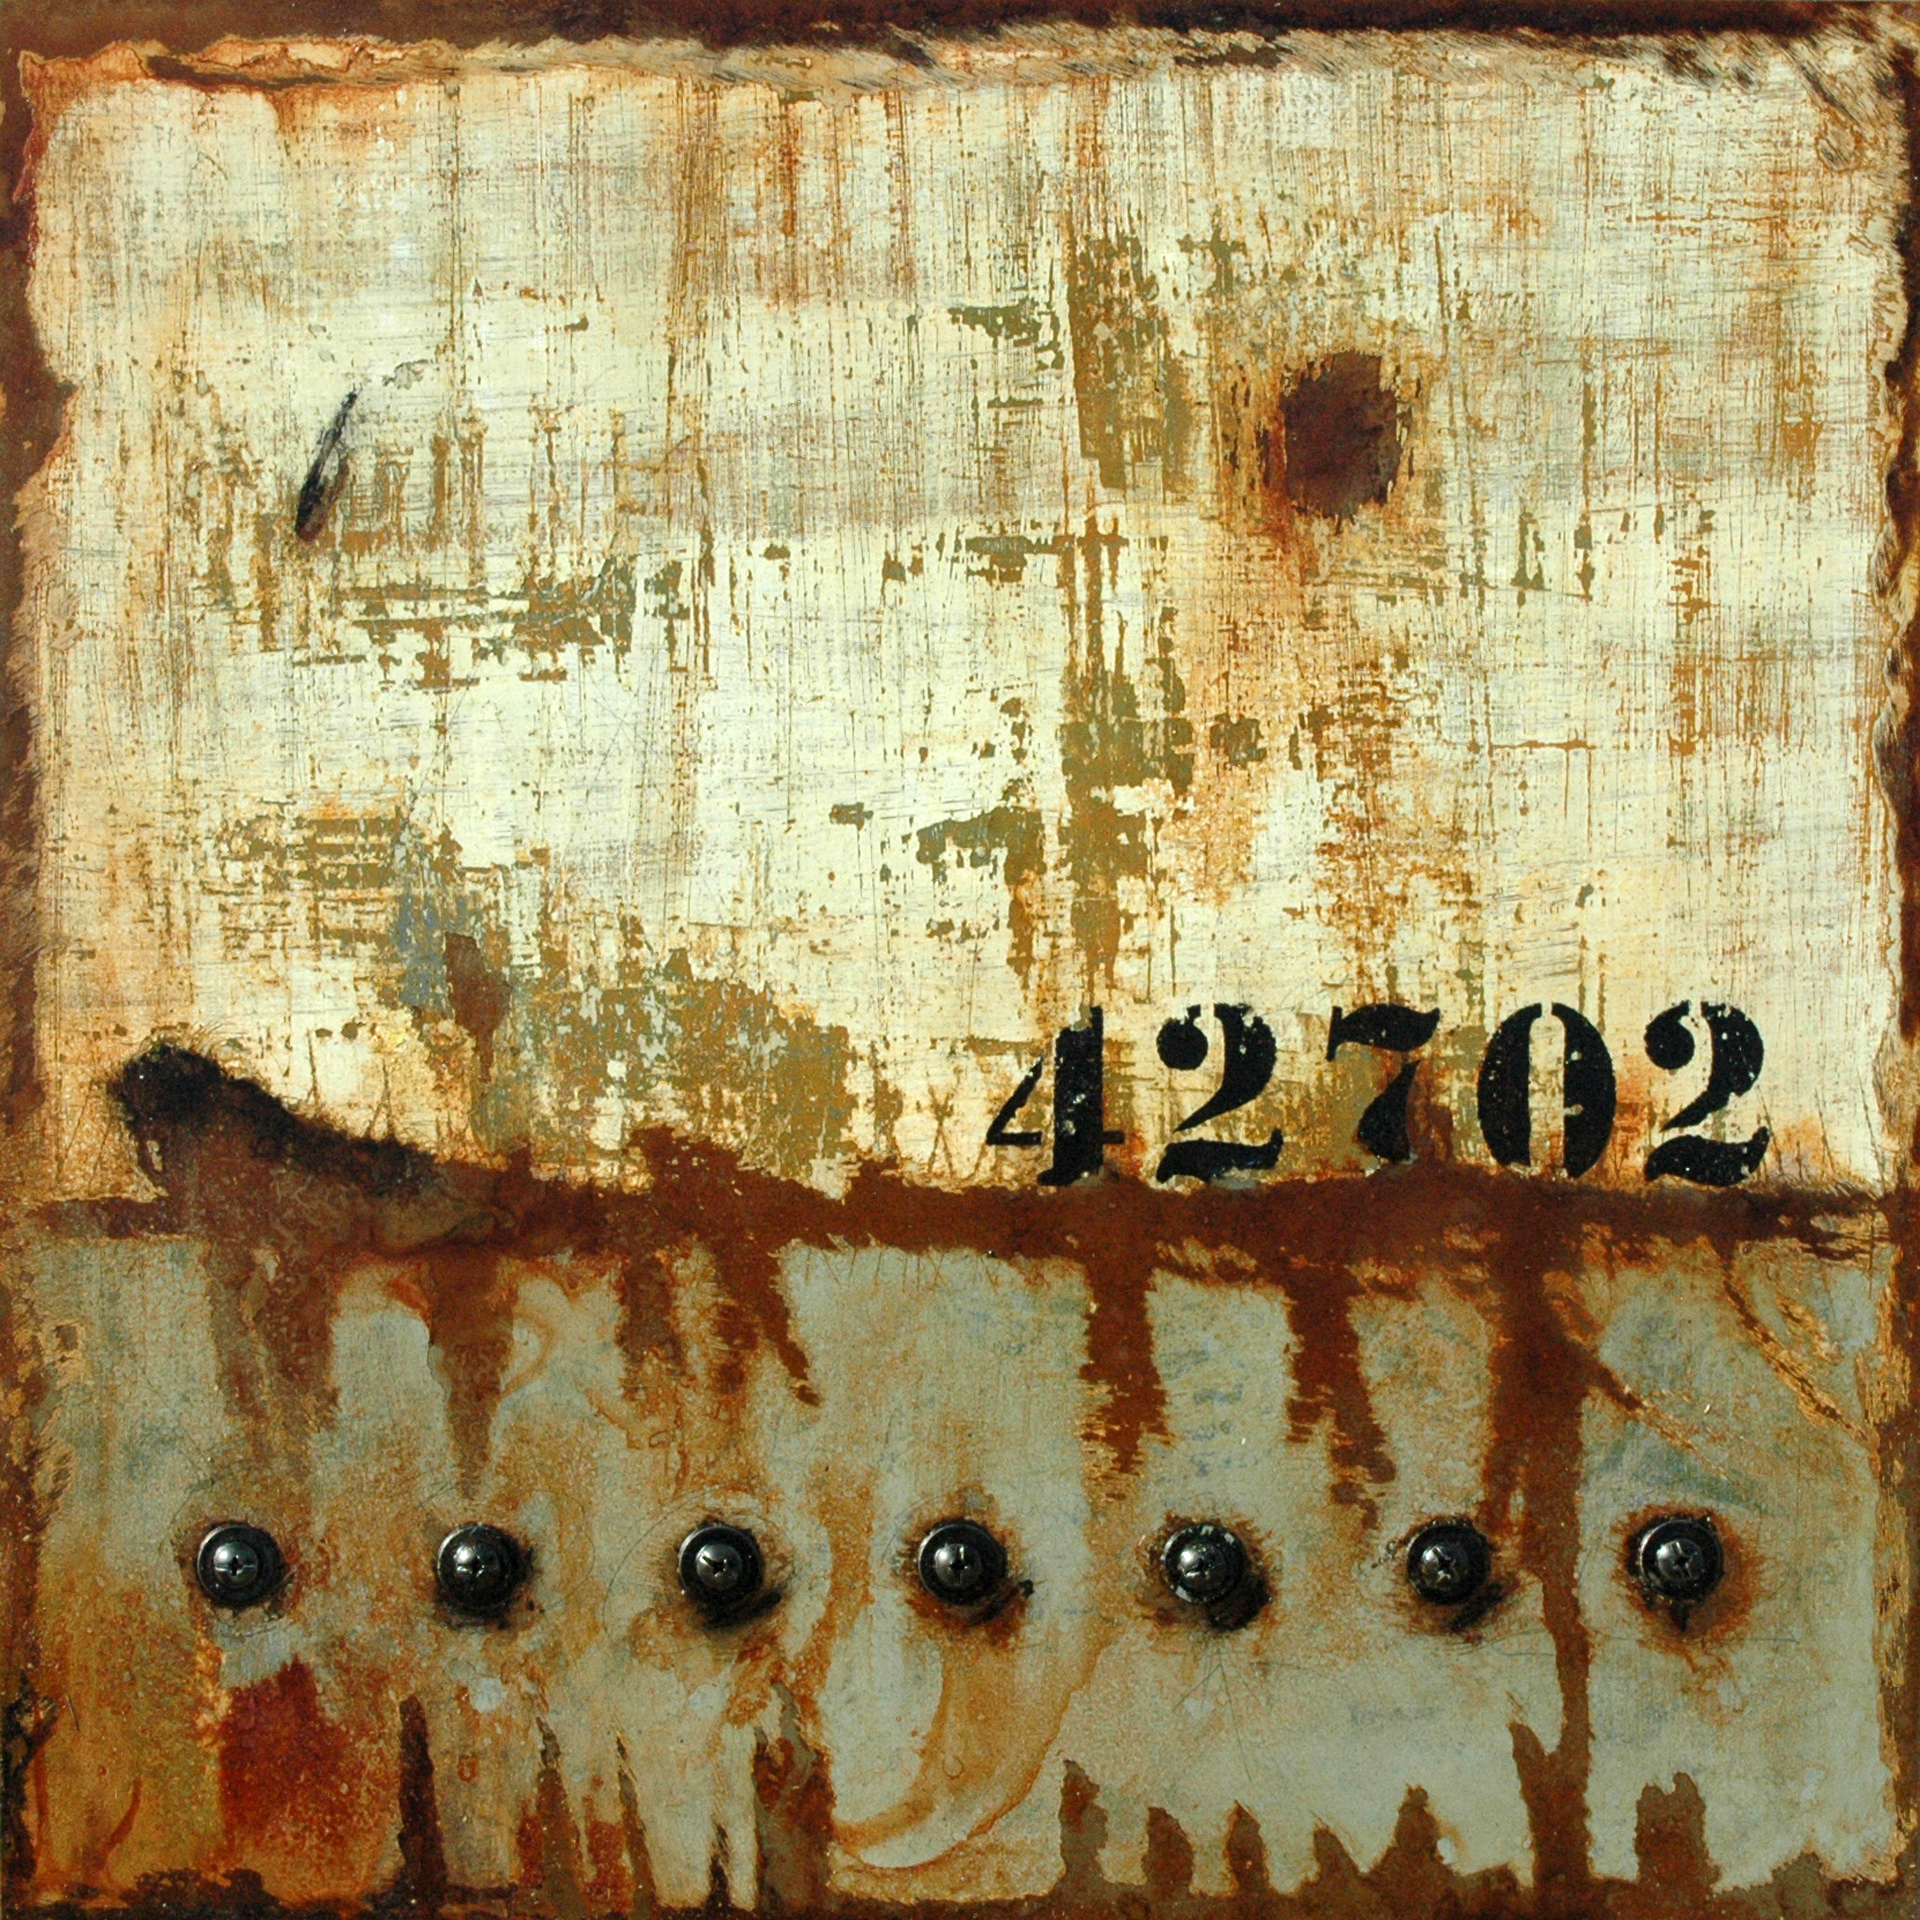 Markings: 42702 - Industrial themed mixed media art by Domenick Naccarato